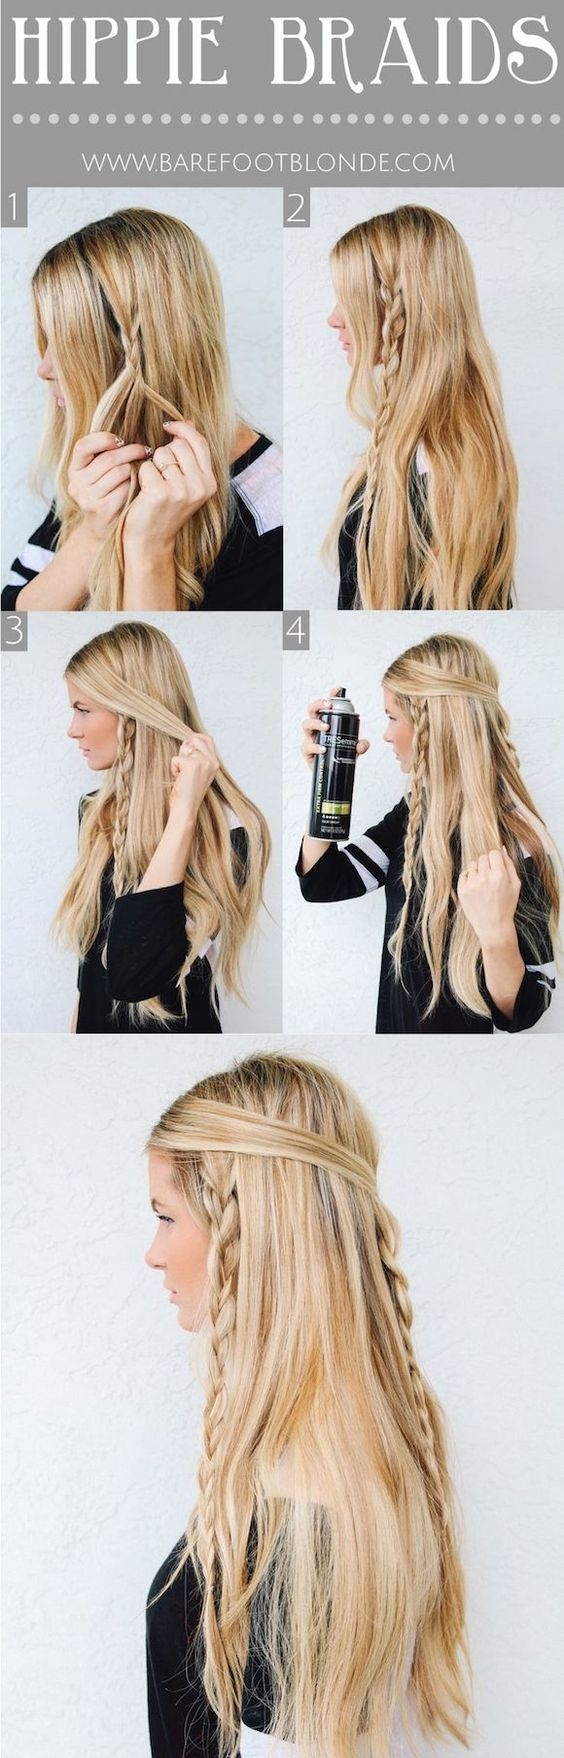 Easy Everyday Hairstyles For Medium Length Hair Stylecraze Nothing Beats The Versatility Of Medium Le Messy Braided Hairstyles Long Hair Styles Hair Styles